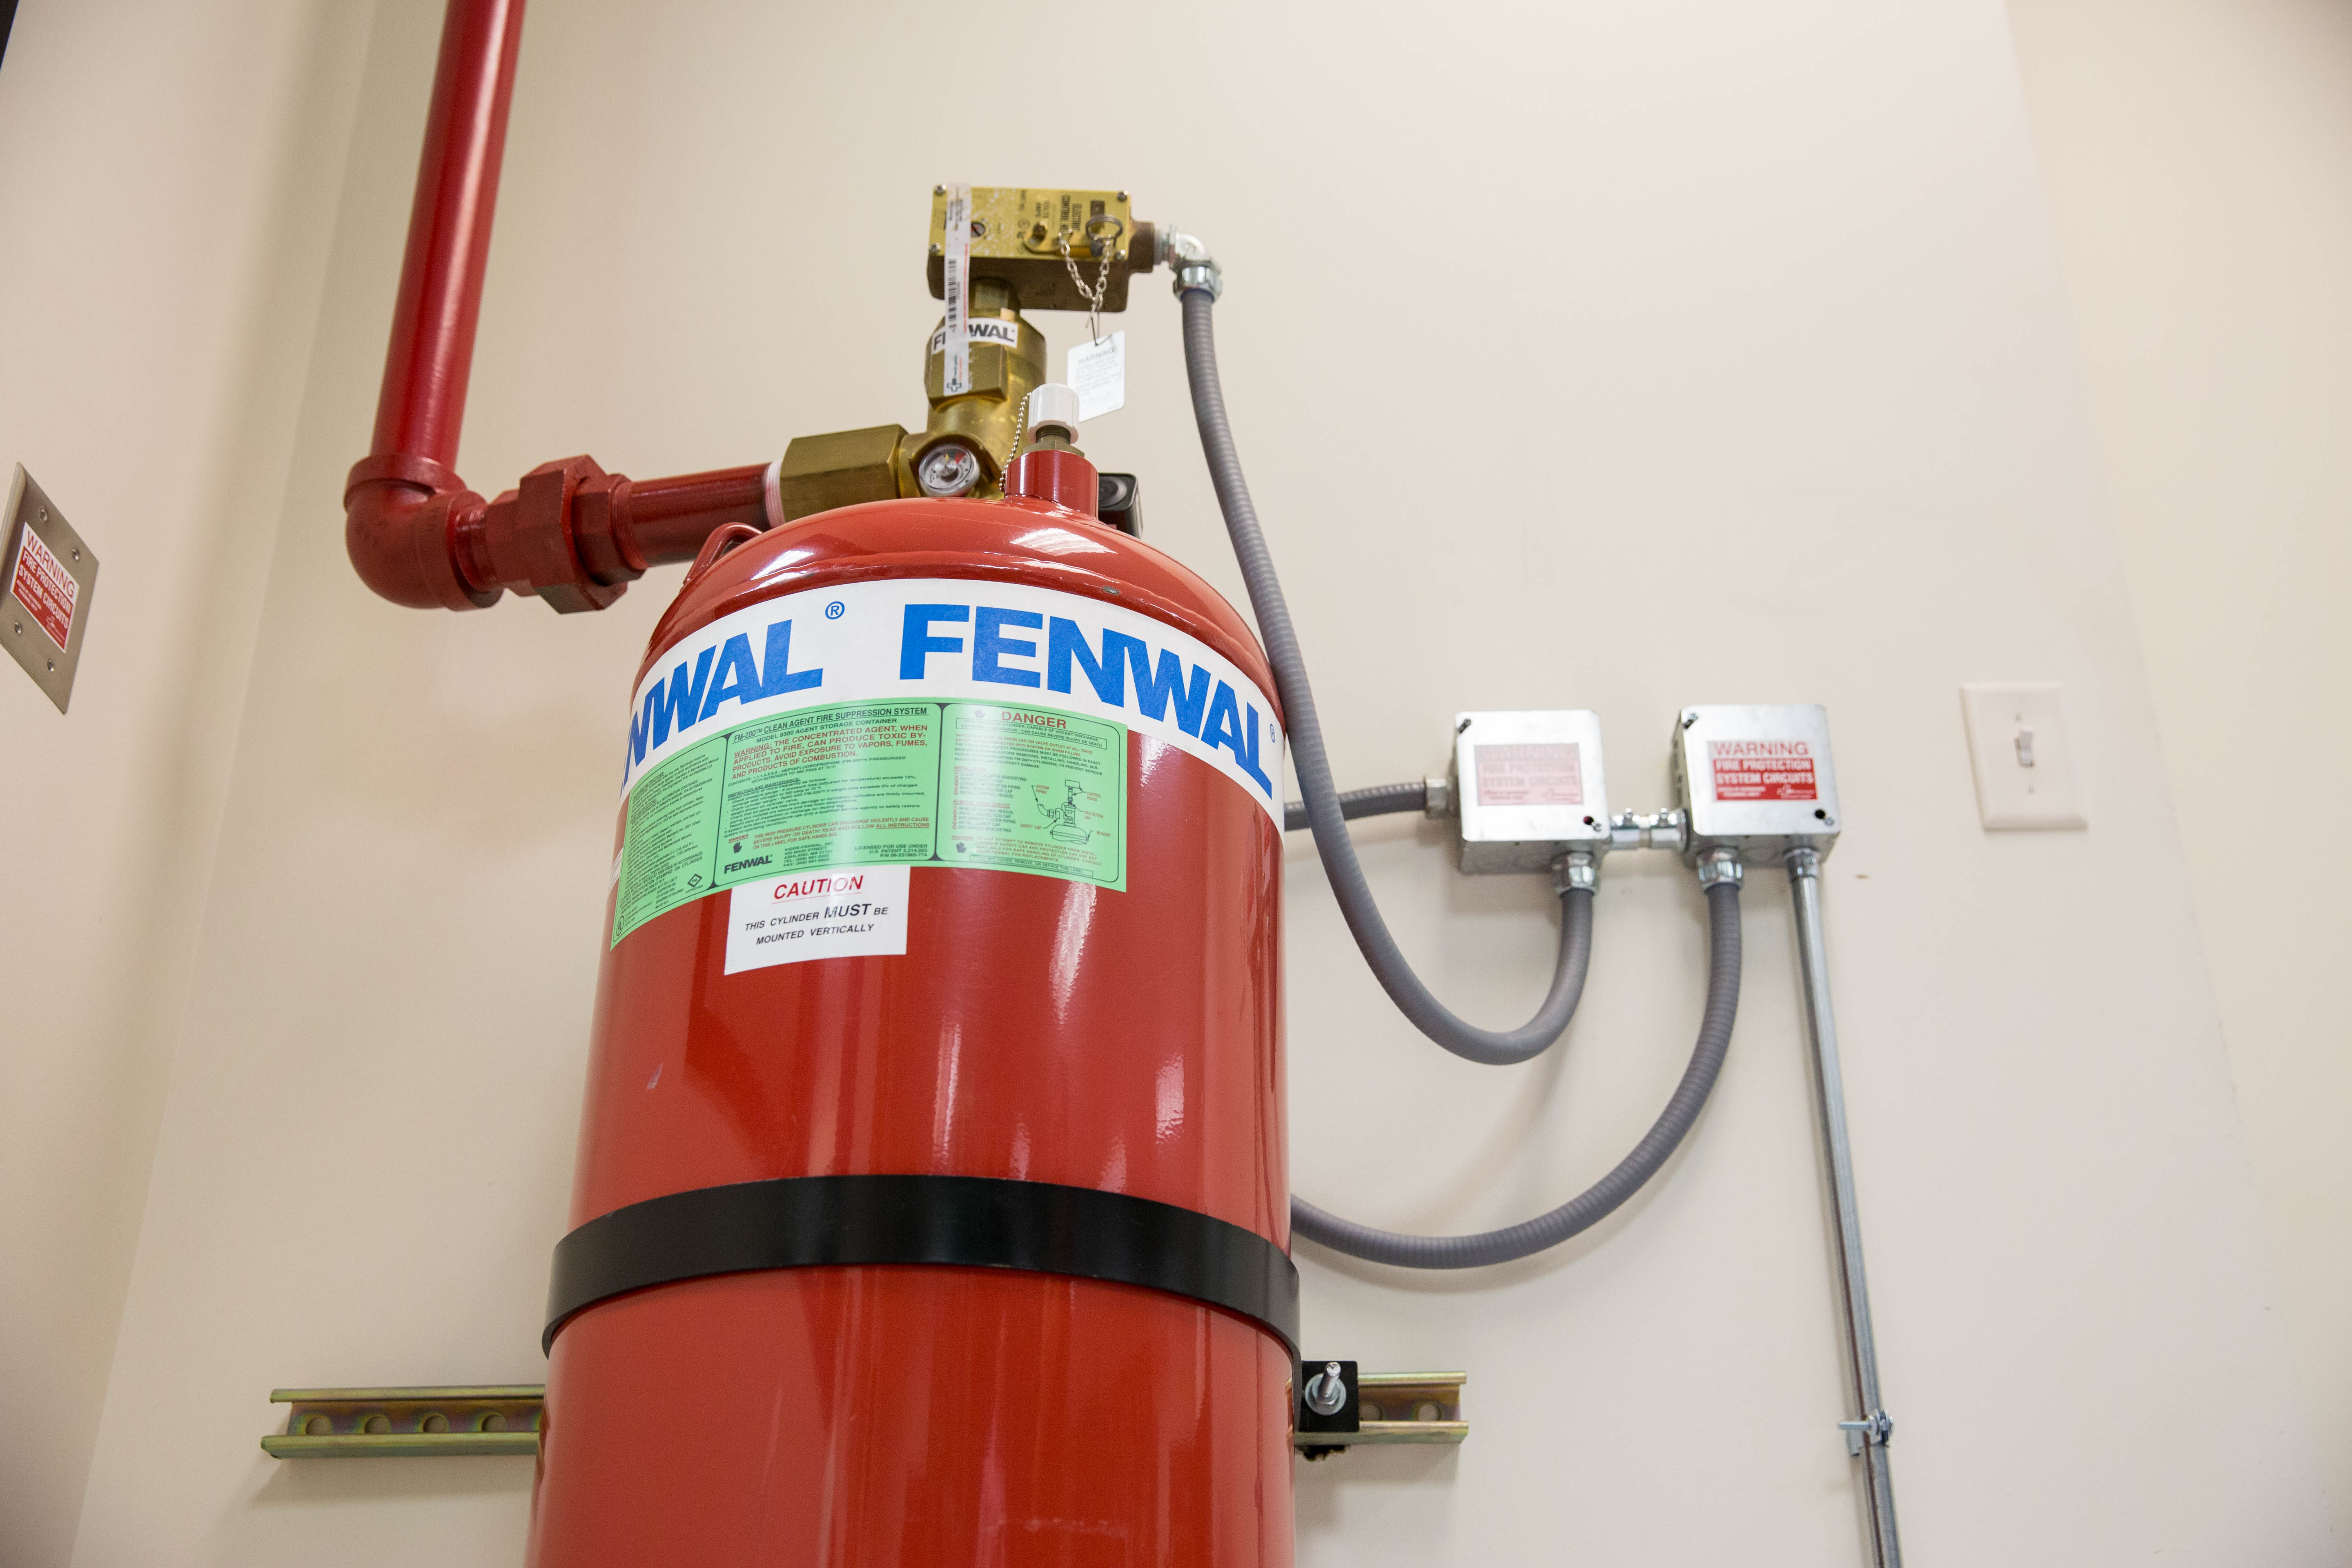 fire detection and suppression systems provided by ORR Protection